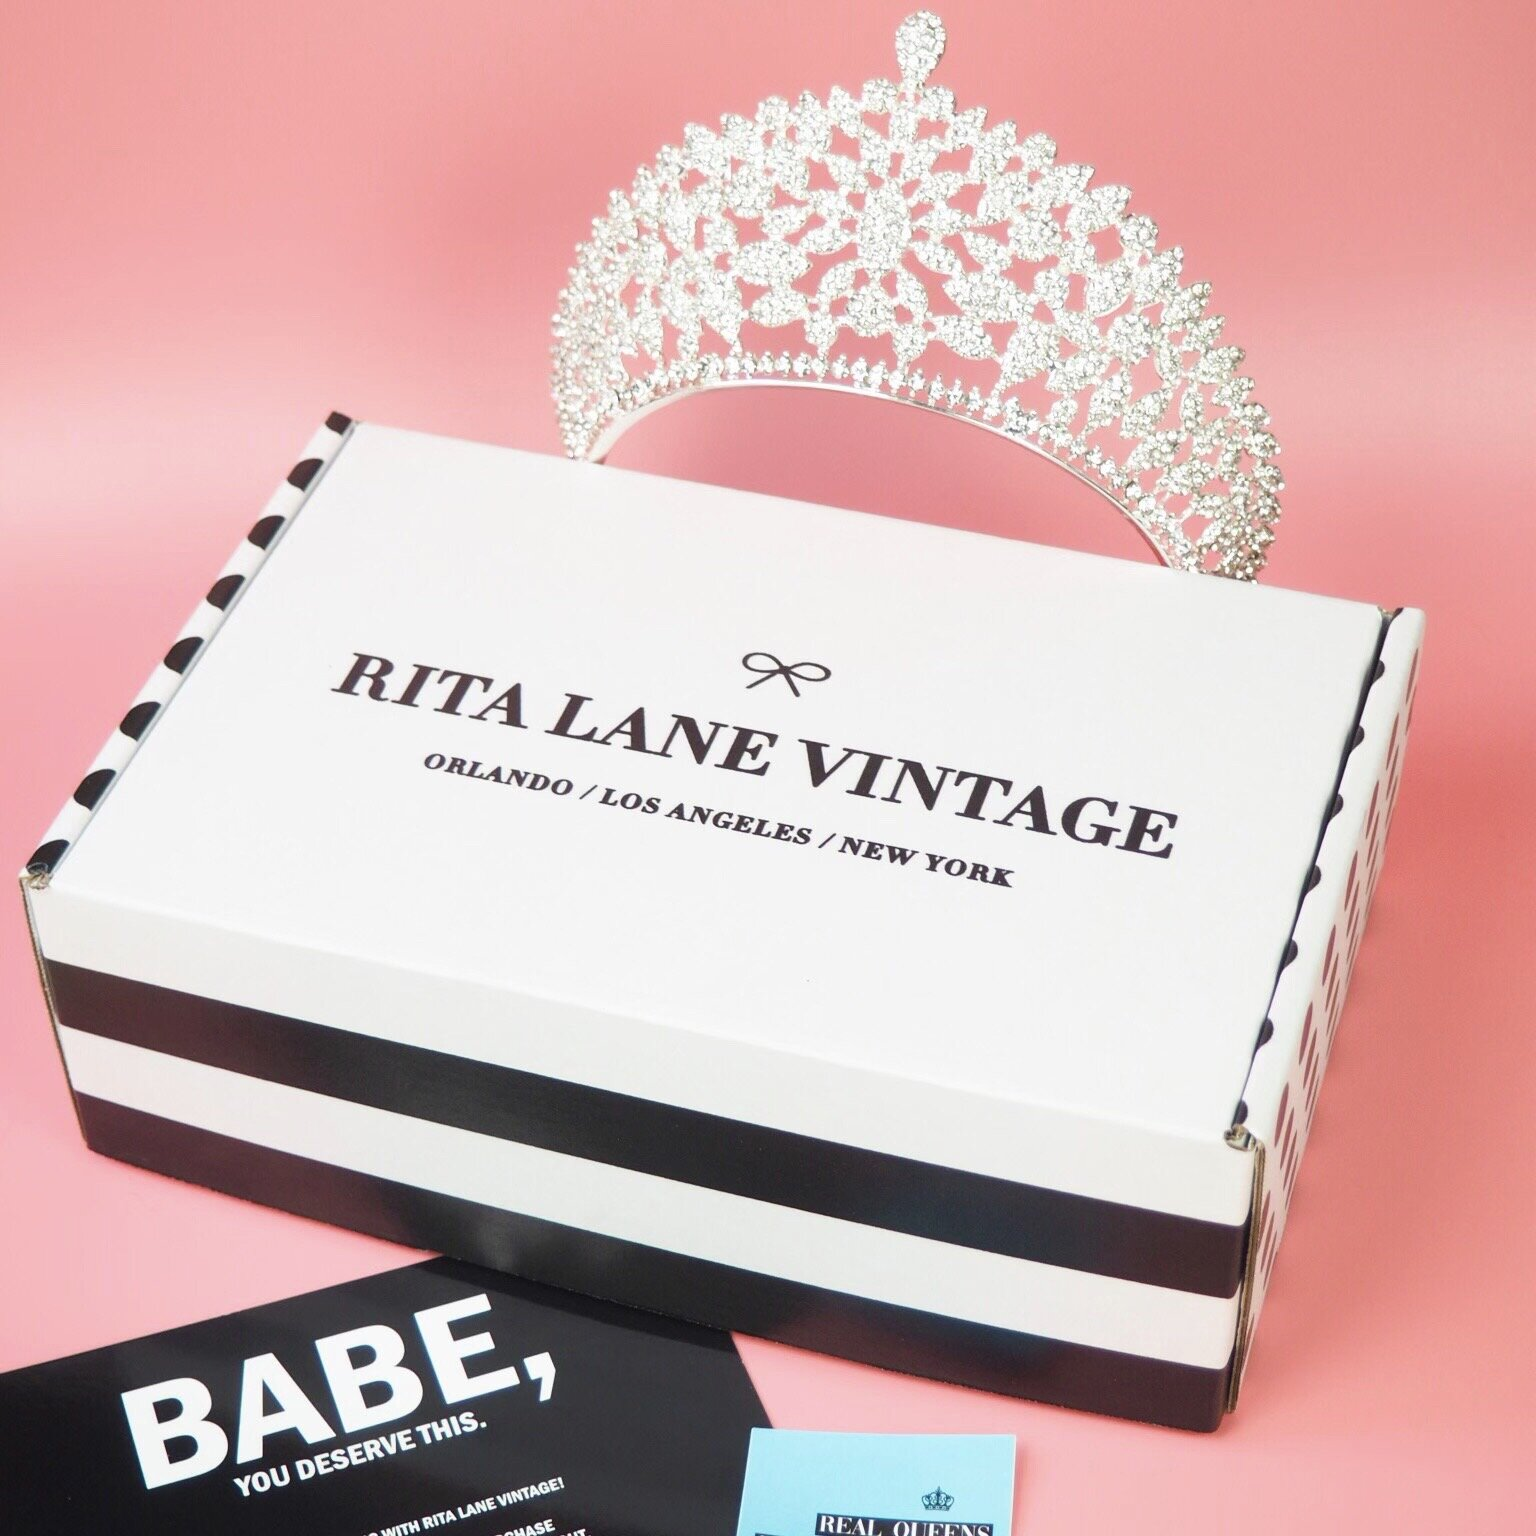 Shipping worldwide in our client-favorite Rita Lane Vintage Tiara Box. - Not sure where to store your fabulous tiara or how to package it for a loved one? Keep it safe and super chic in our Rita Lane Vintage Tiara Box.